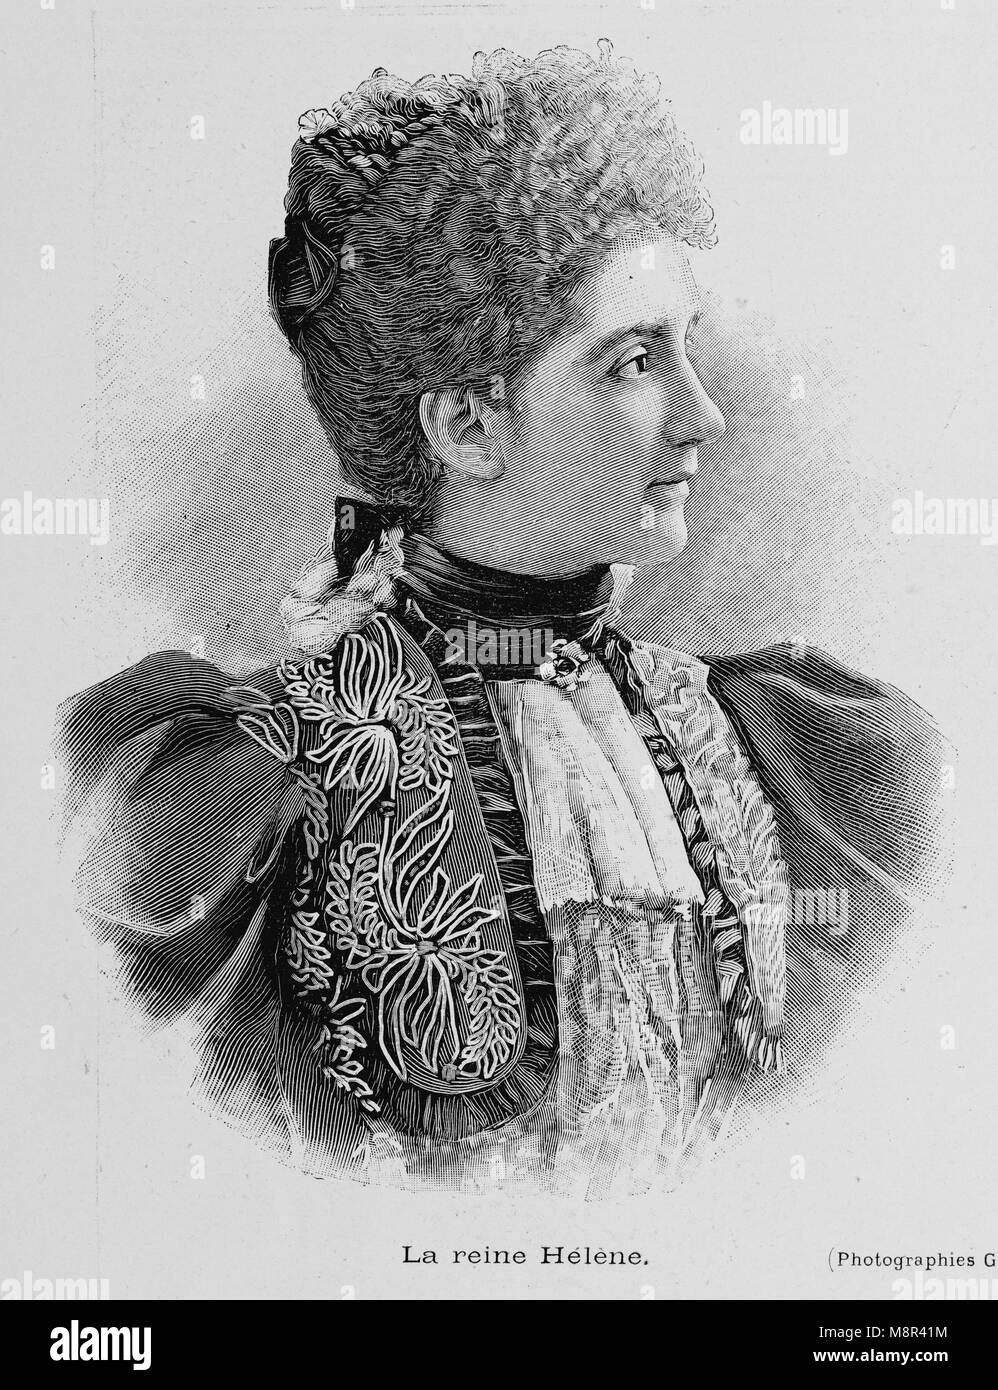 Queen Elena of Montenegro, the wife of King Victor Emmanuel III of Italy, Picture from the French weekly newspaper - Stock Image